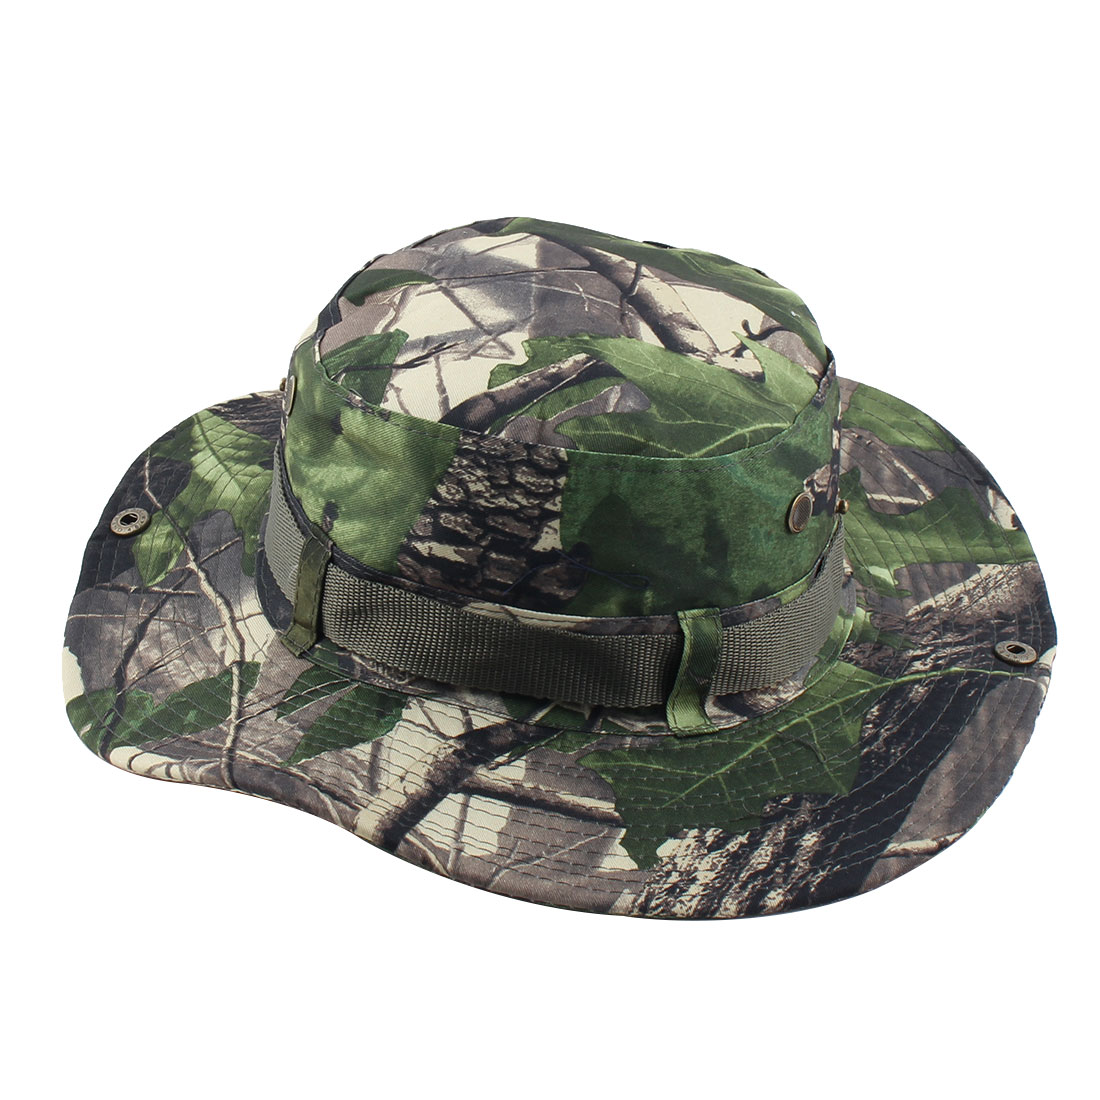 Fisherman Outdoor Sports Hiking Hunting Adjustable Strap Wide Brim Protector Bucket Summer Cap Fishing Hat Camouflage